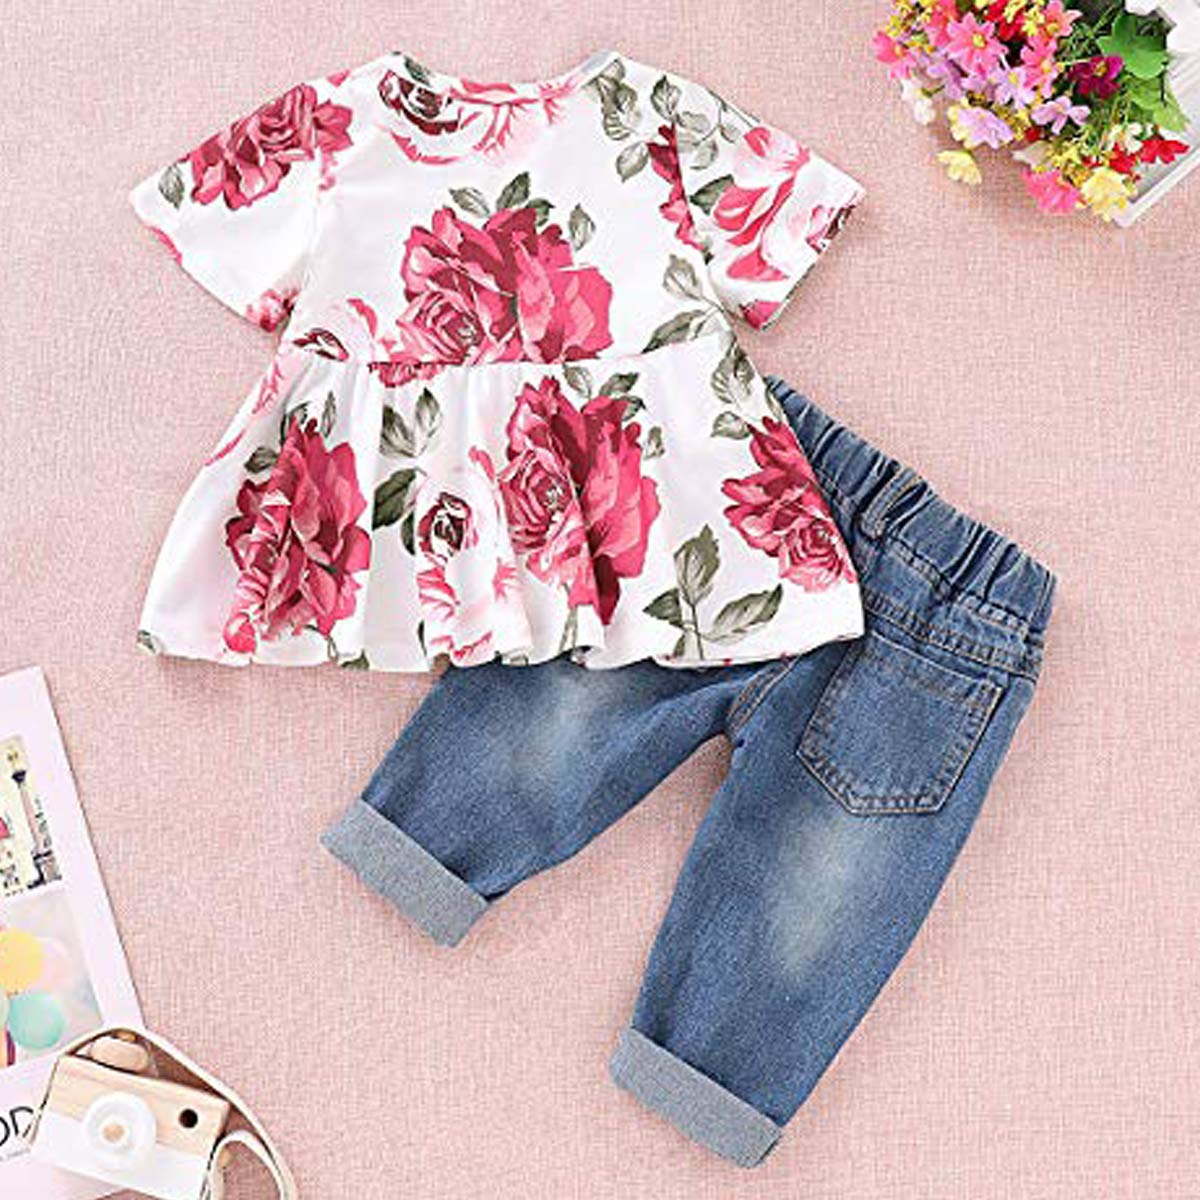 Mutigge Little Girls Strapless Outfit Ripped Jeans Pant Clothing Set